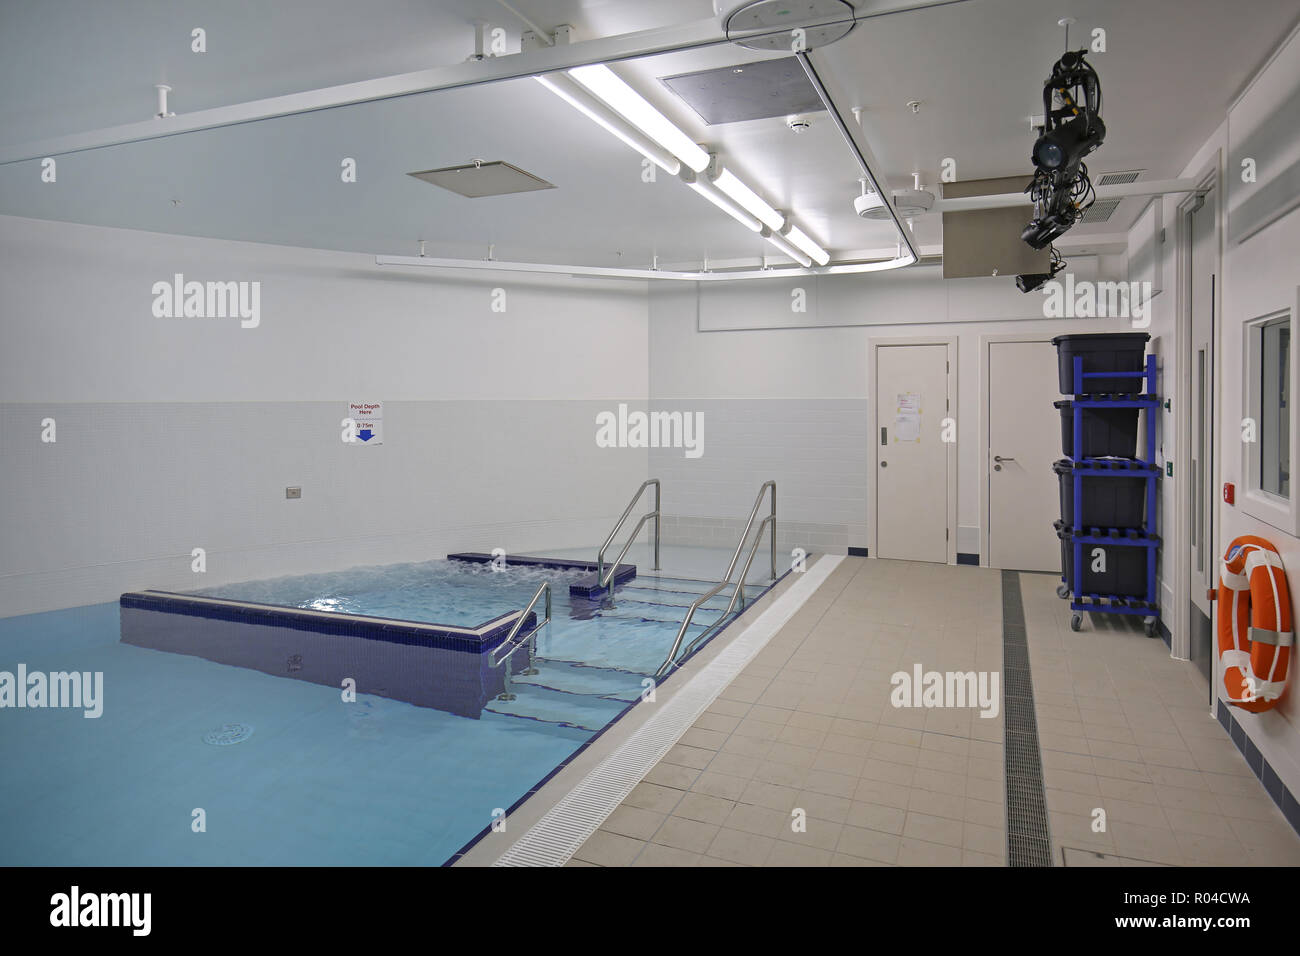 Hydrotherapy pool in a brand new special school for children with severe learning difficulties, Southwark, London, UK Stock Photo